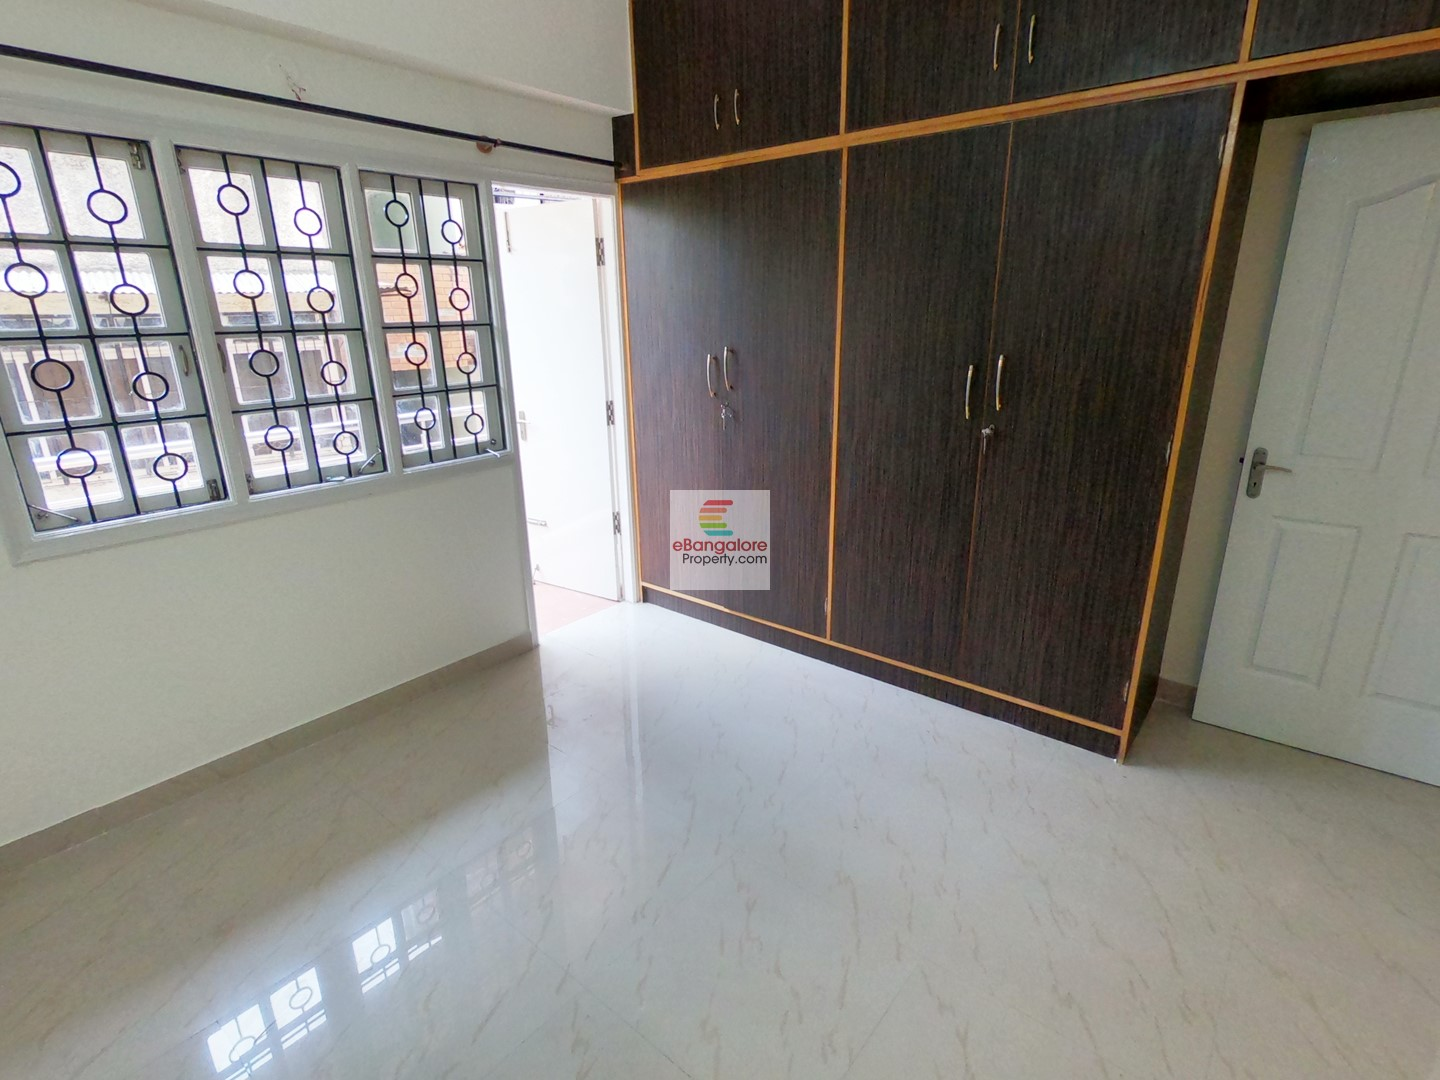 Benson Town – 2BHK Flat for Rent in Posh Location – Just 2 KM from Fun World